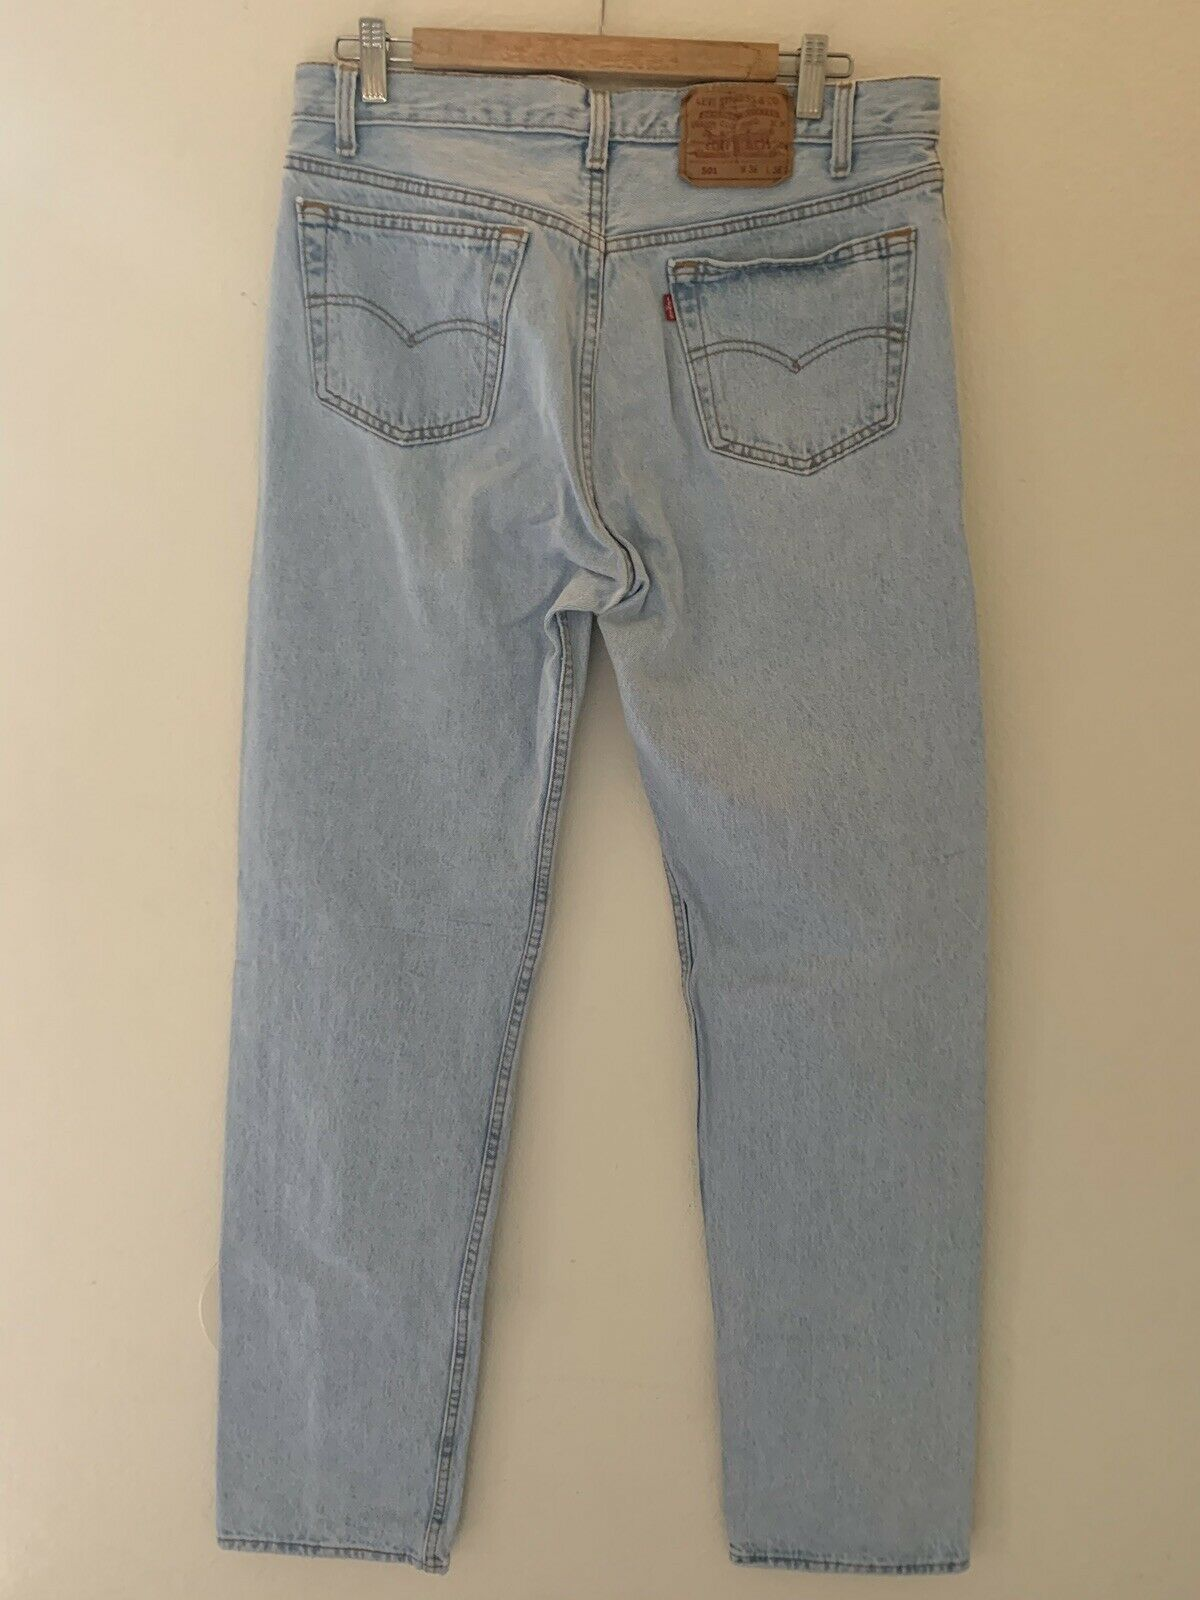 Levis Vintage 501 Made In USA - image 2